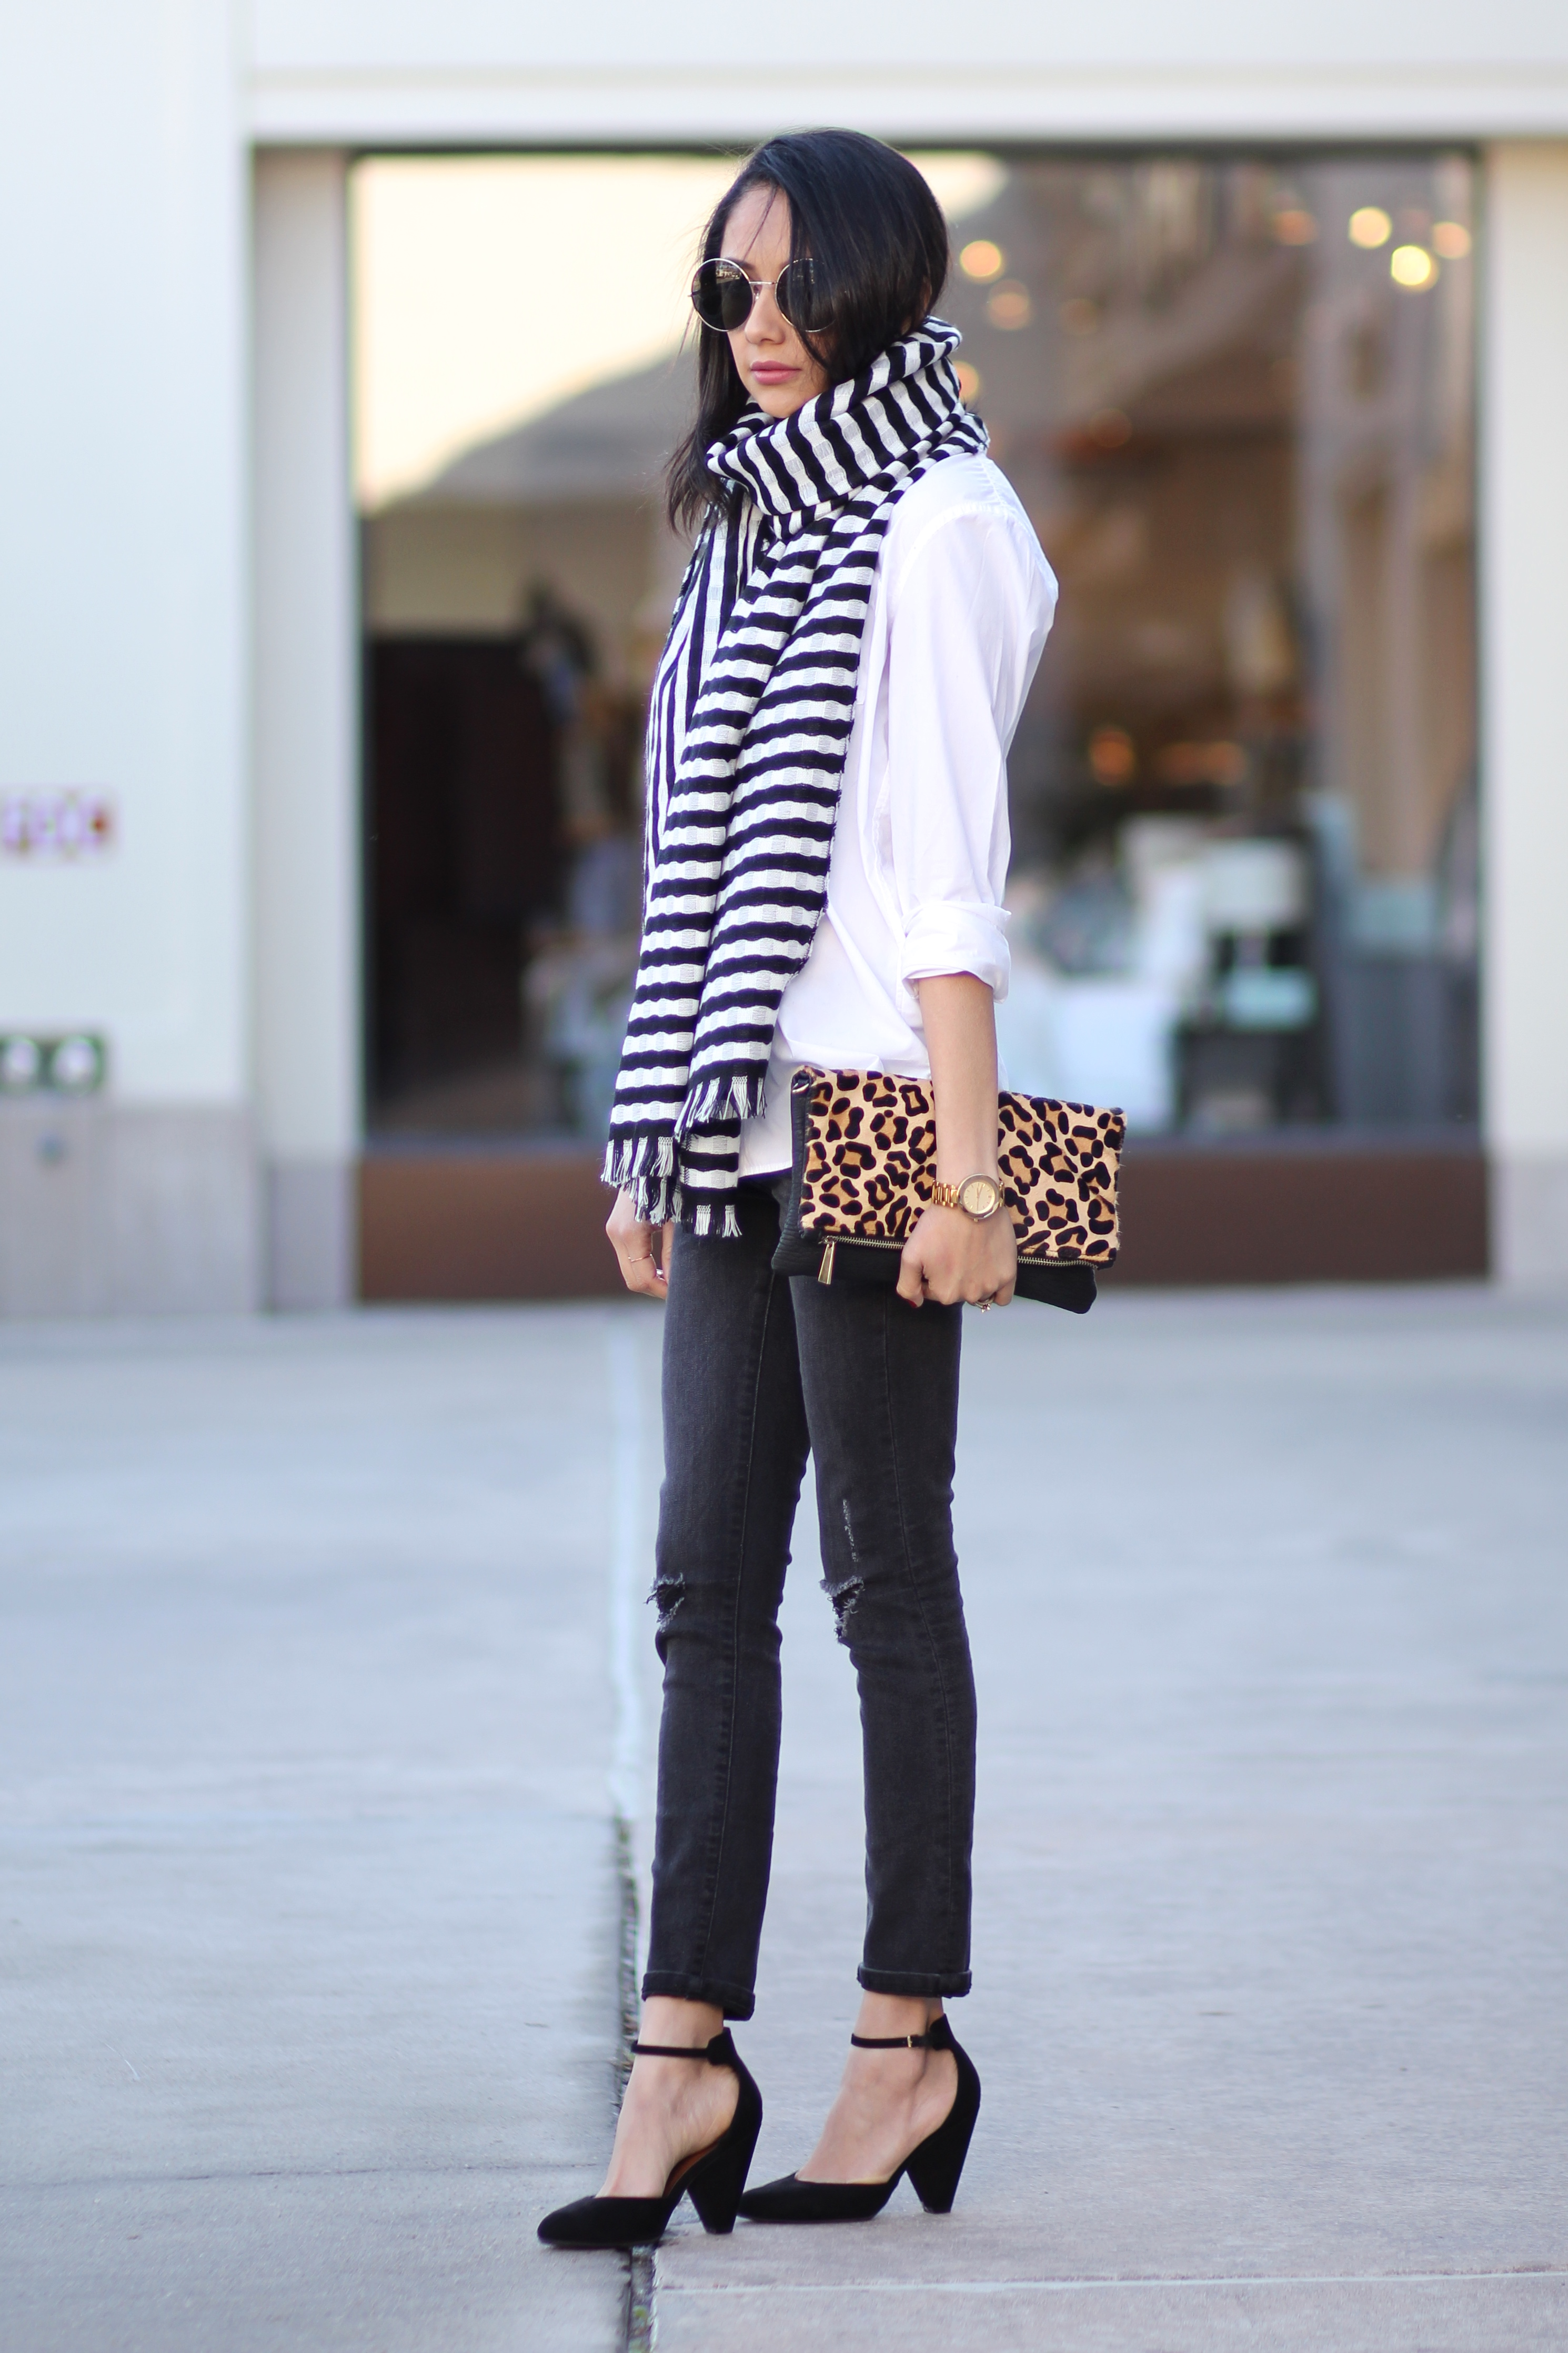 Blogger Lilly Beltran of Daily Craving in a Fall Casual look in a striped blanket scarf and skinny jeans